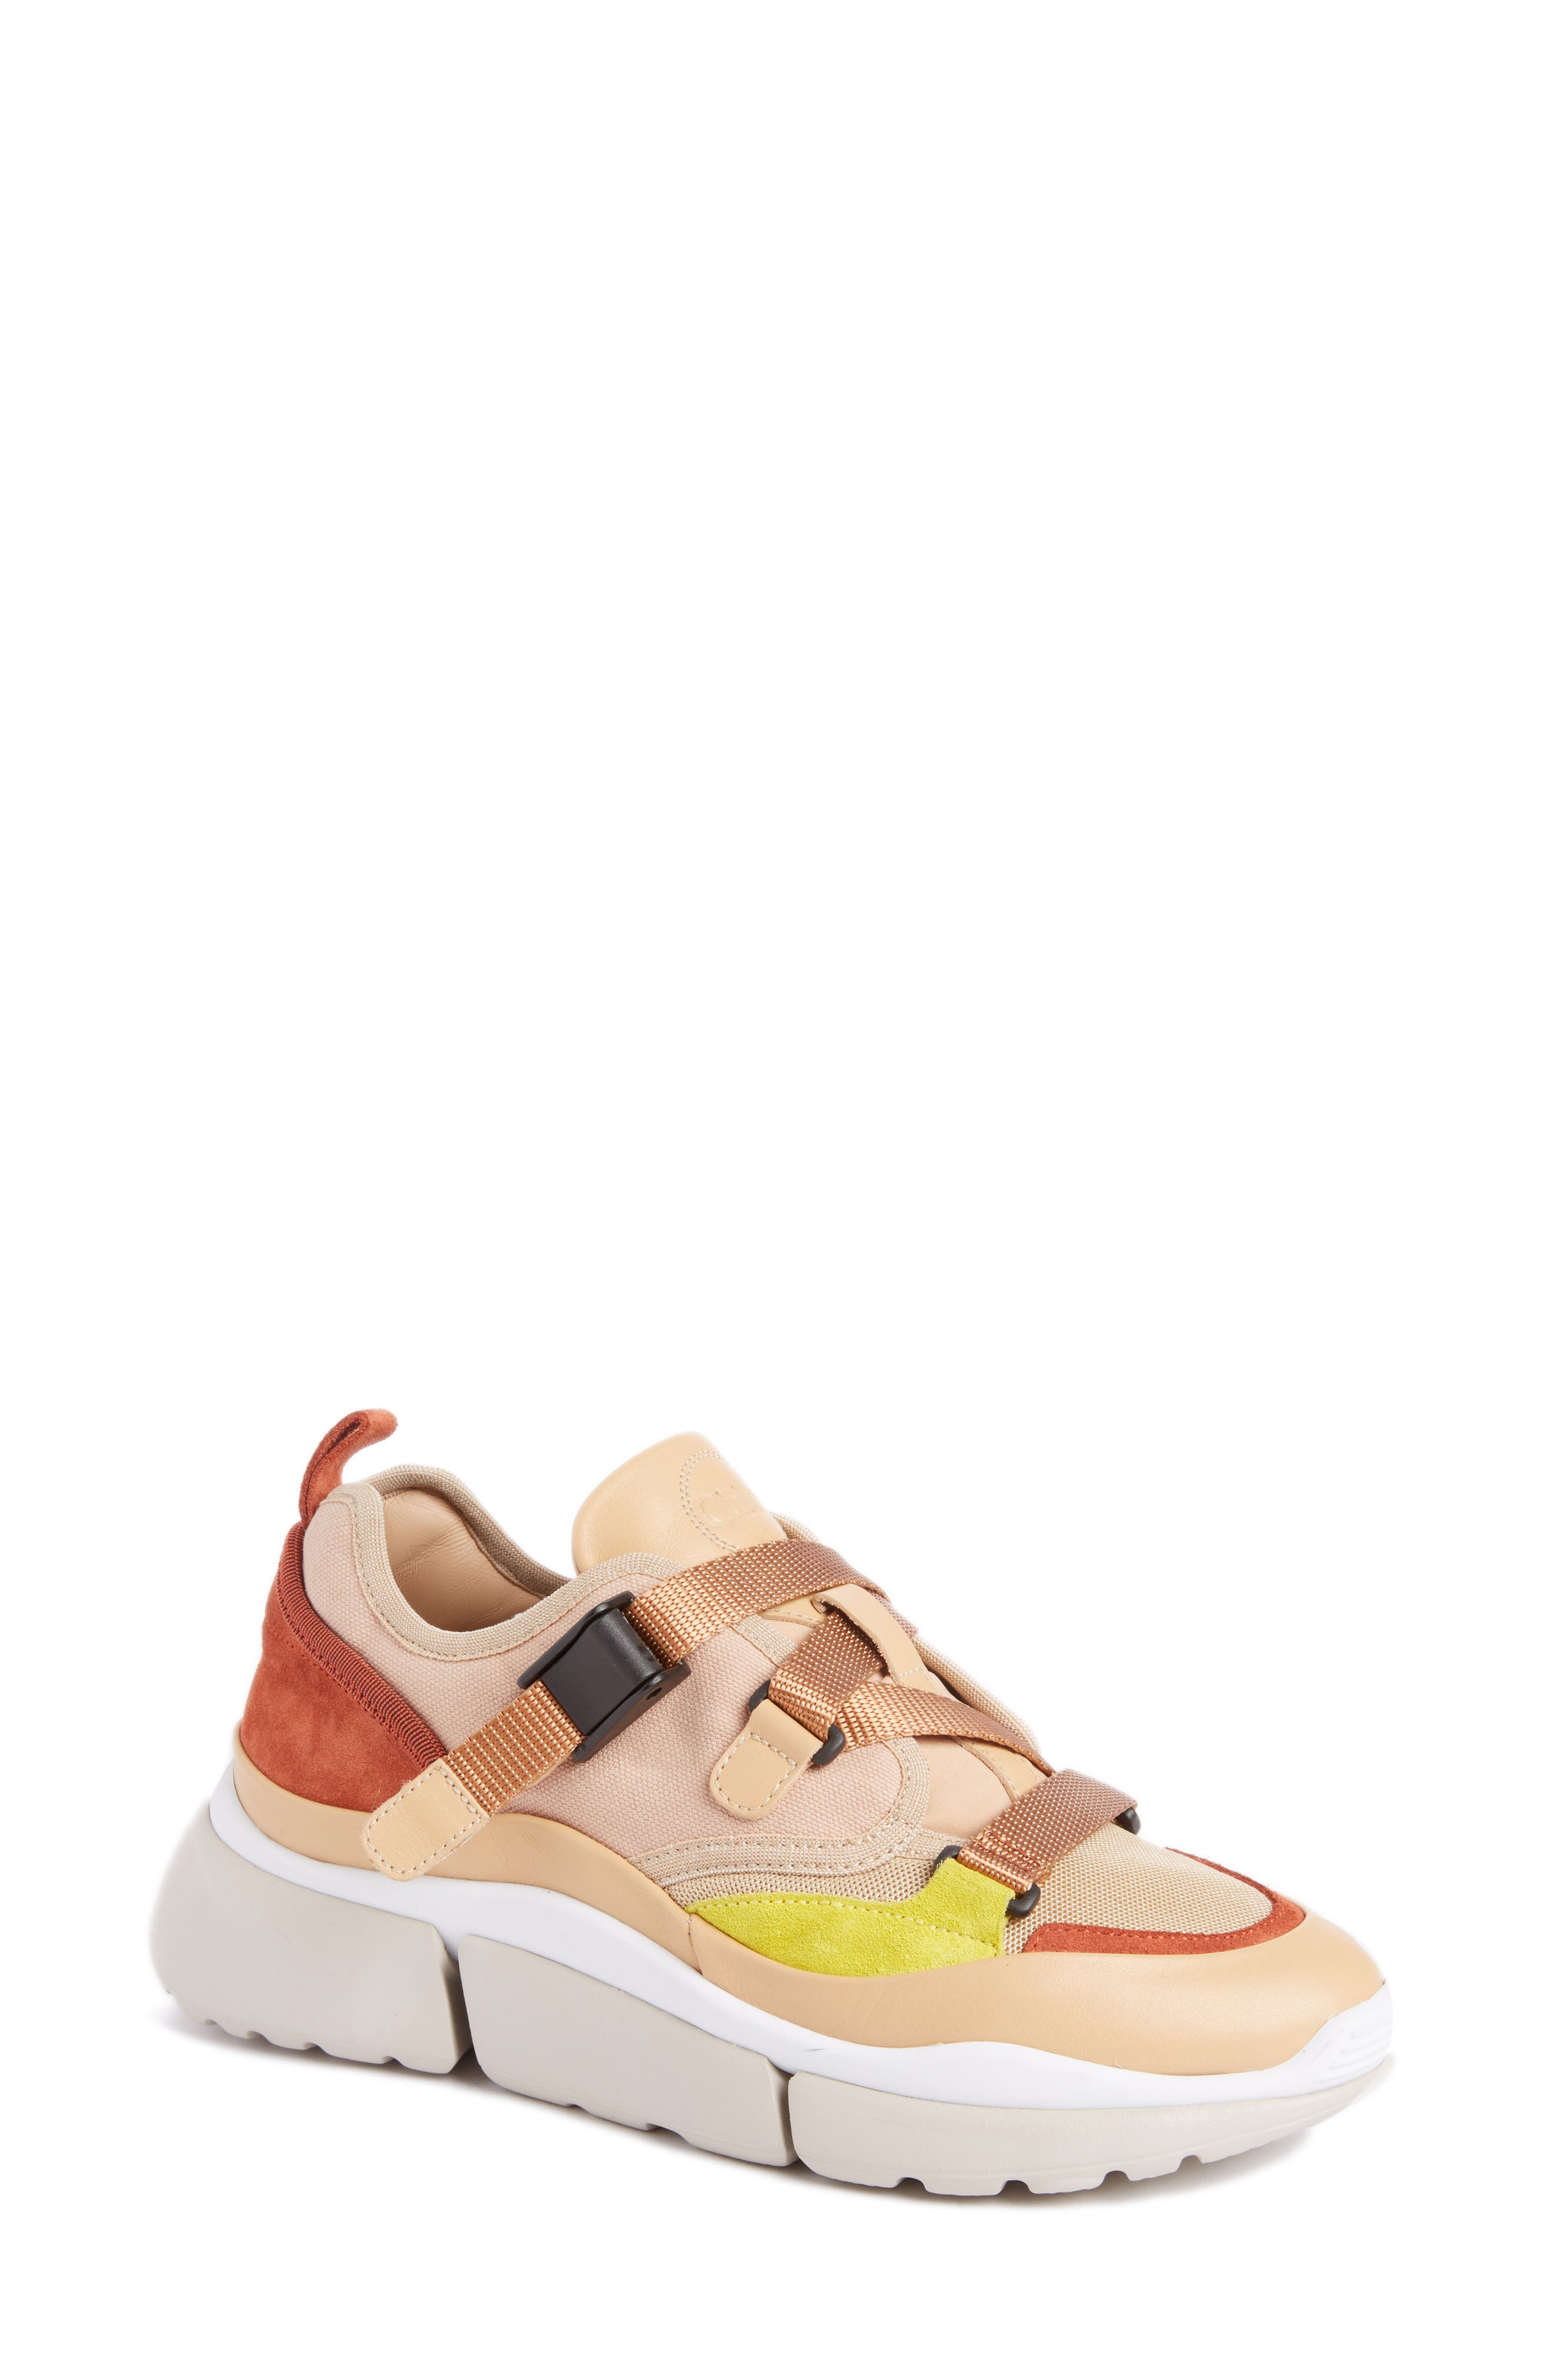 Chloe Sonnie Low Top Sneaker, Pink